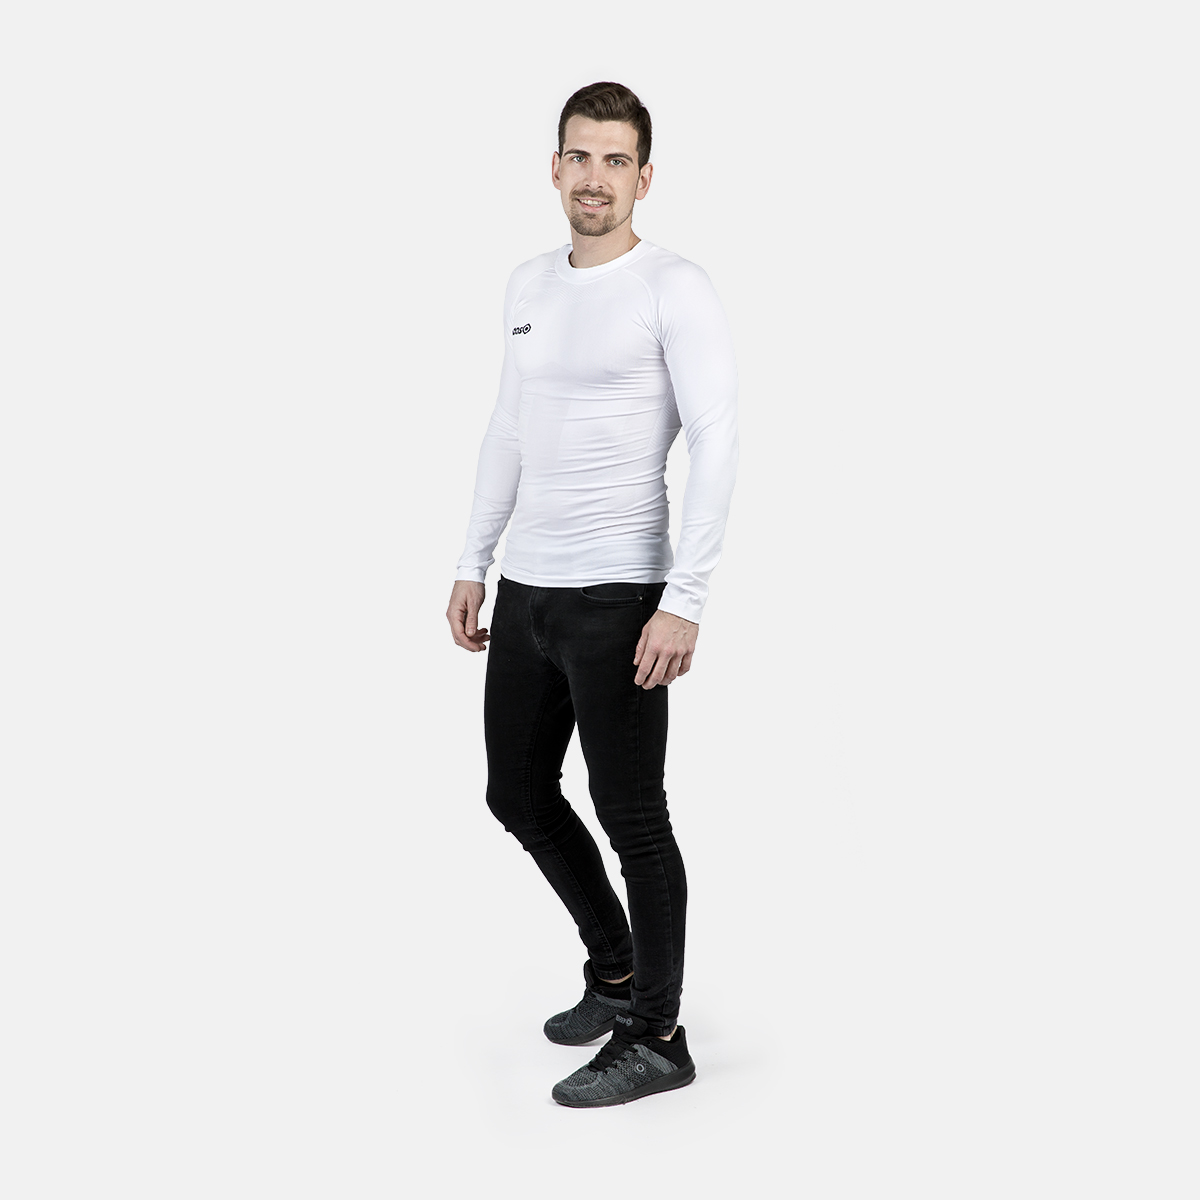 UNISEX'S SAREK THERMAL T-SHIRT WHITE